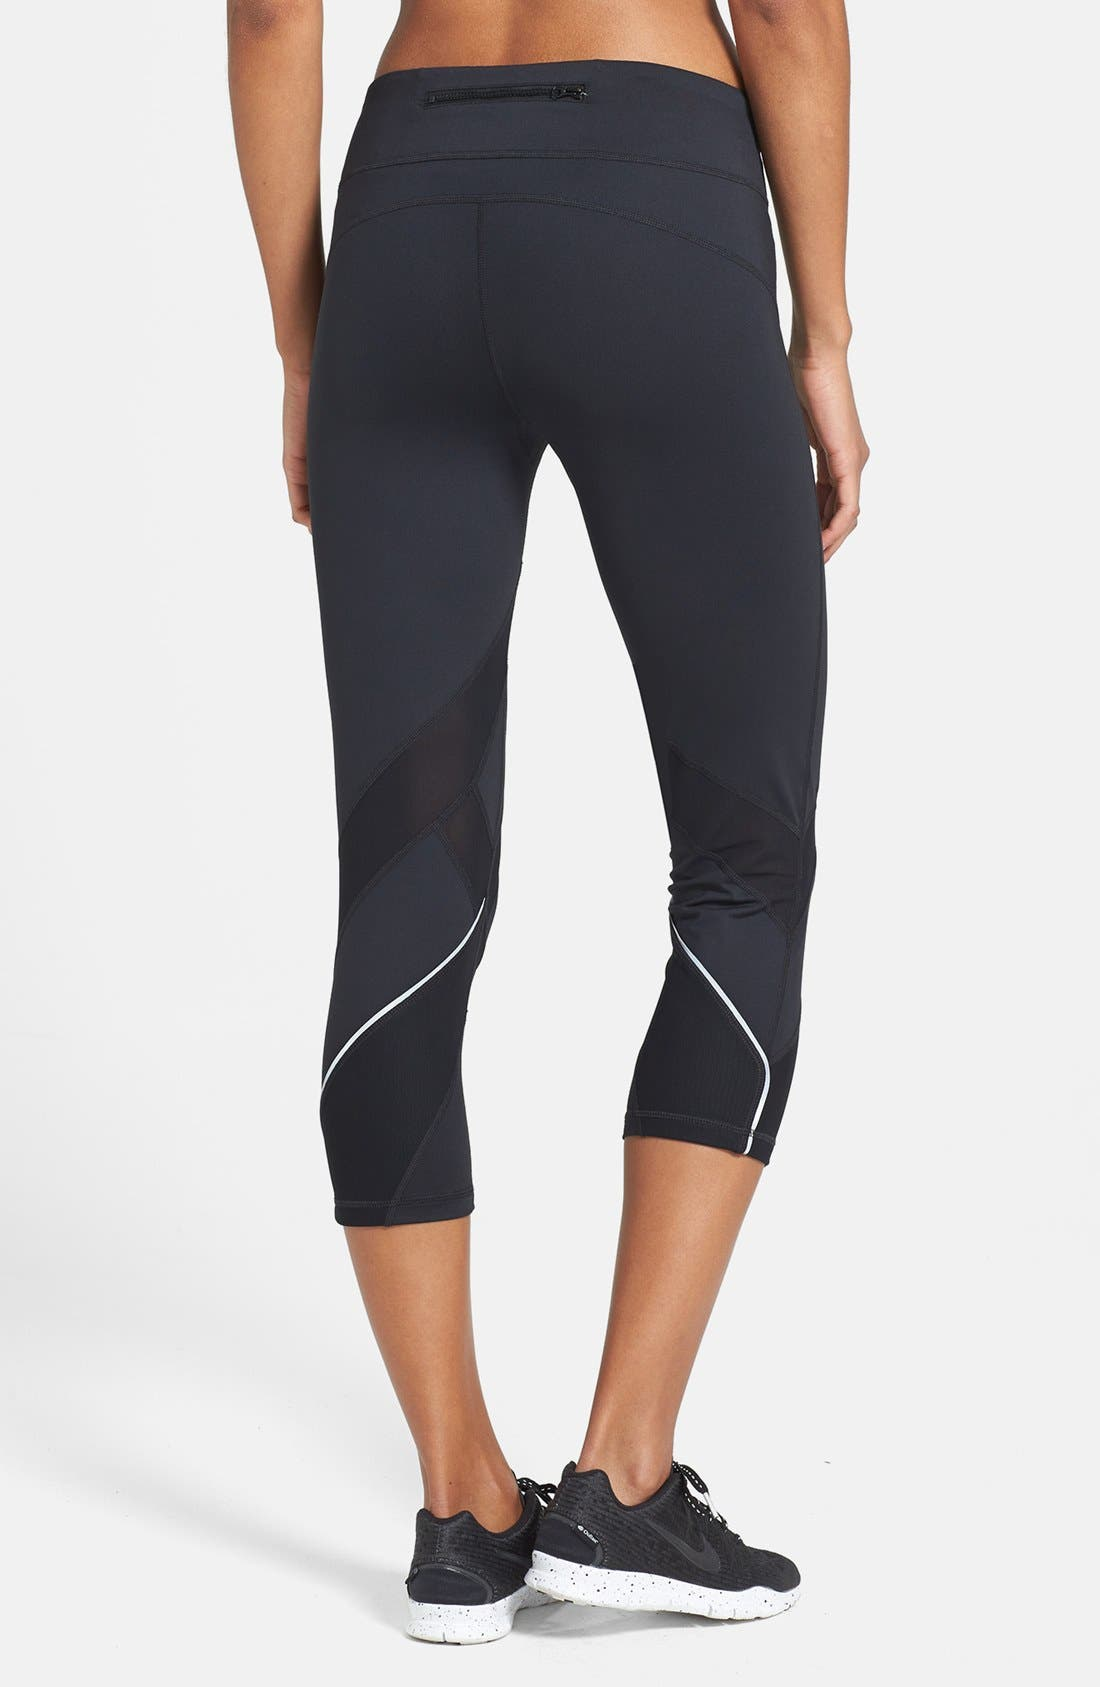 'Bees Knees' Slim Fit Running Capris,                             Alternate thumbnail 2, color,                             001